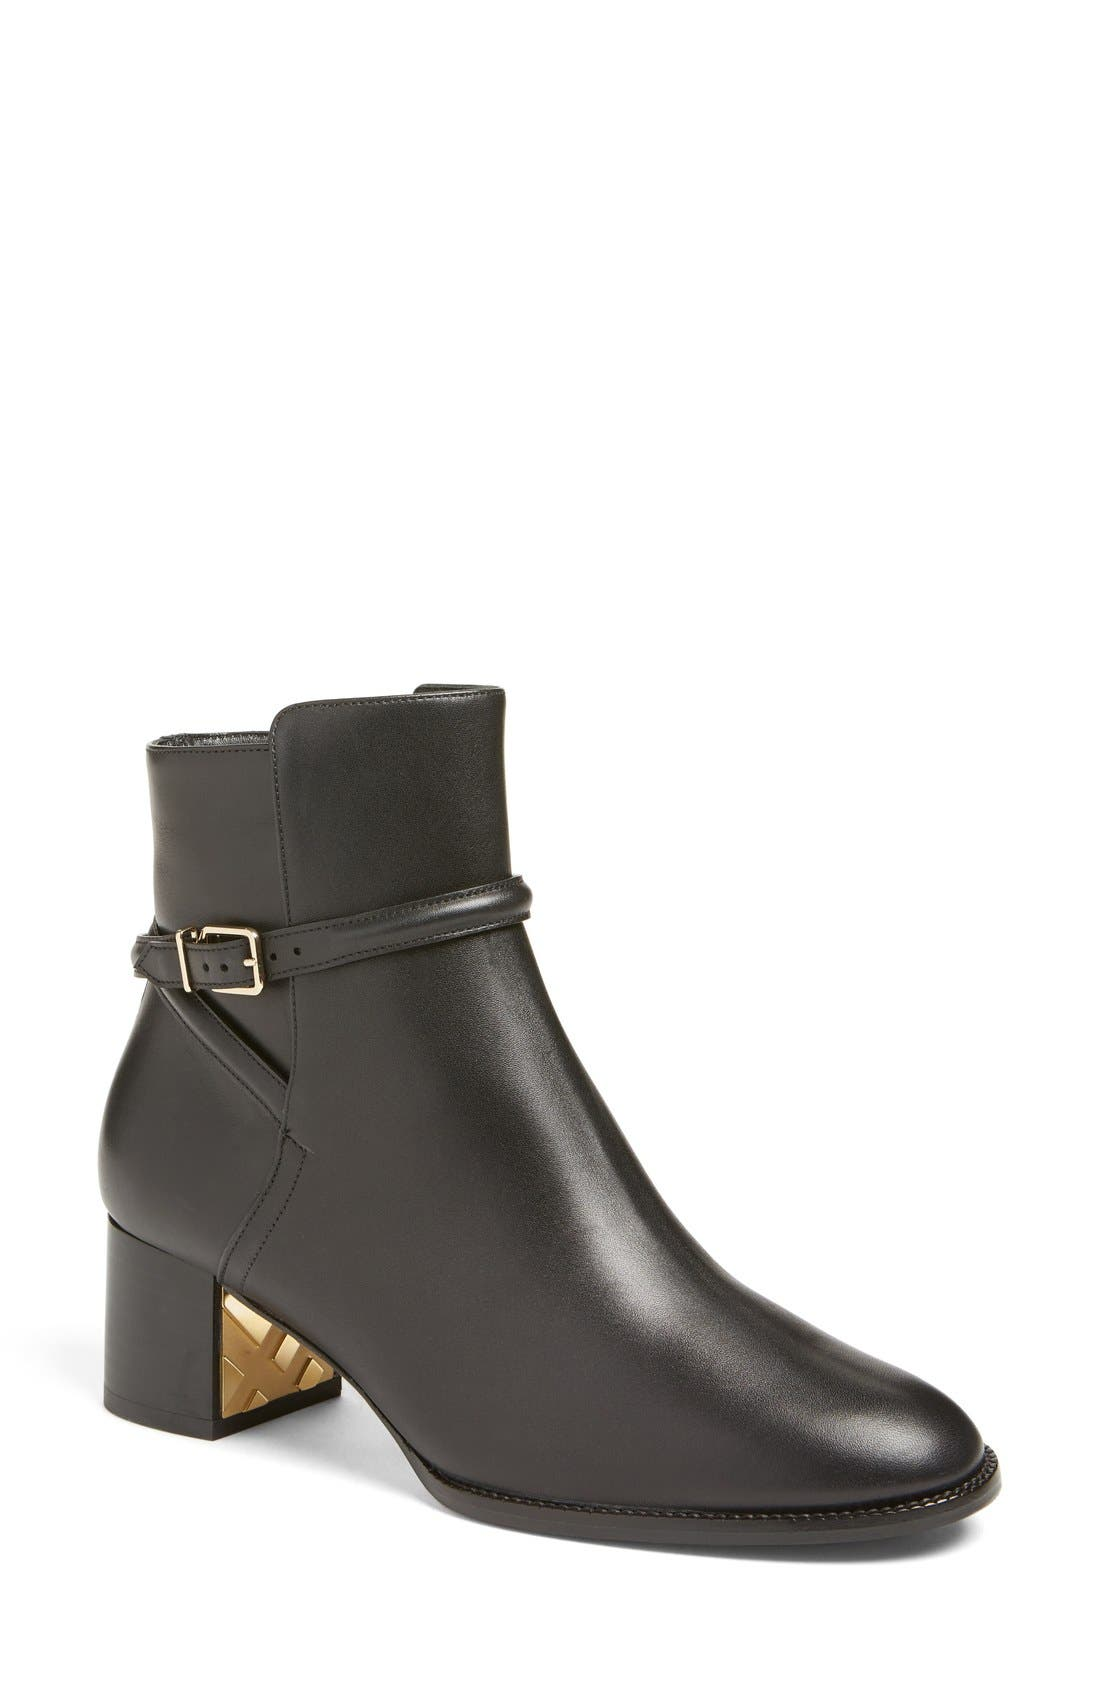 Alternate Image 1 Selected - Burberry 'Shola' Block Heel Bootie (Women)